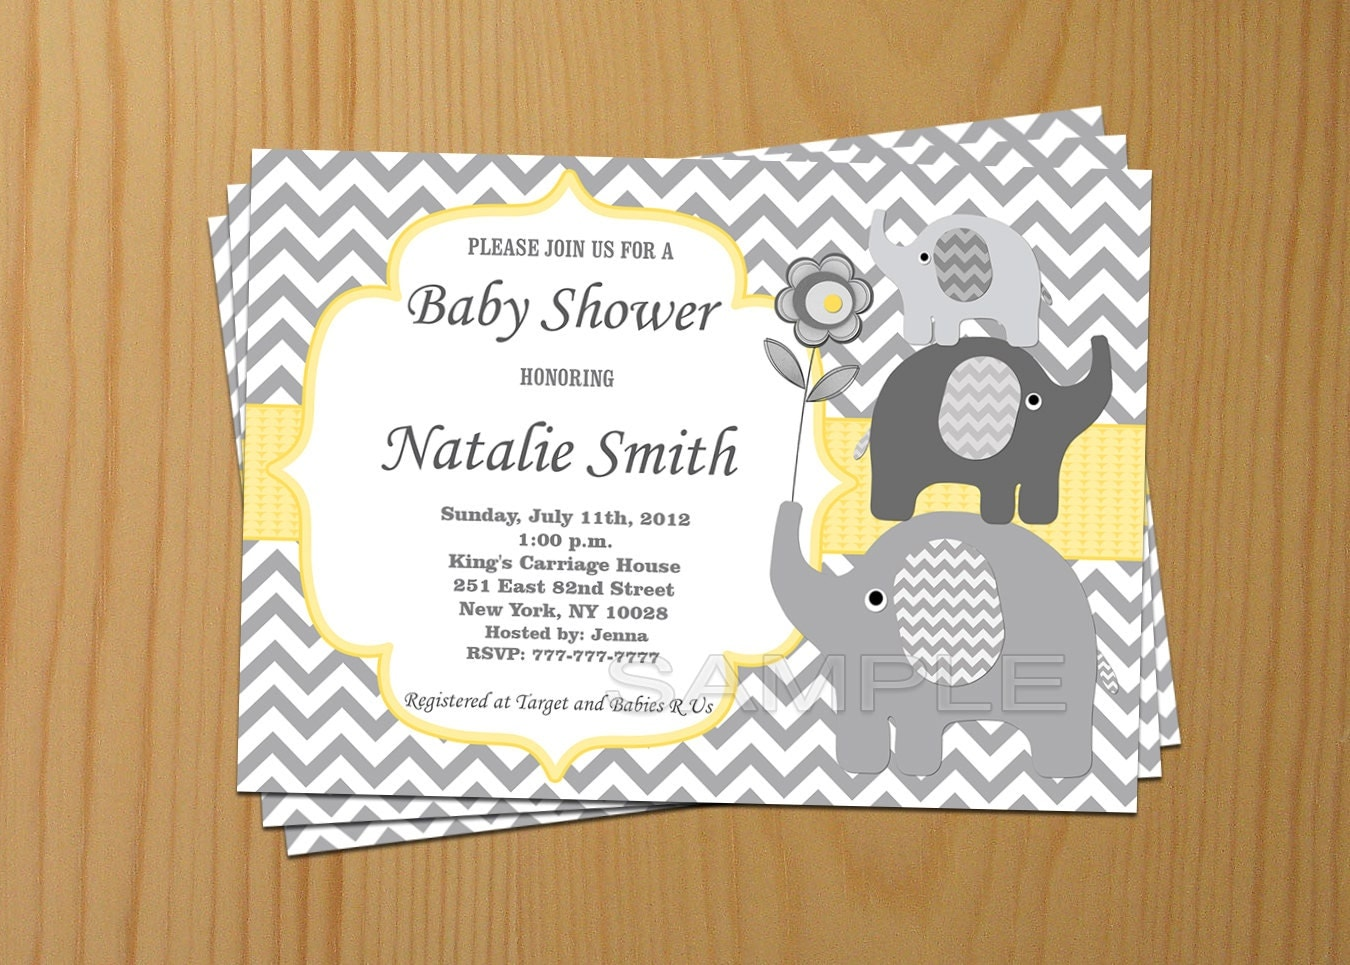 neutral baby shower invitations elephant baby shower invites, Baby shower invitations